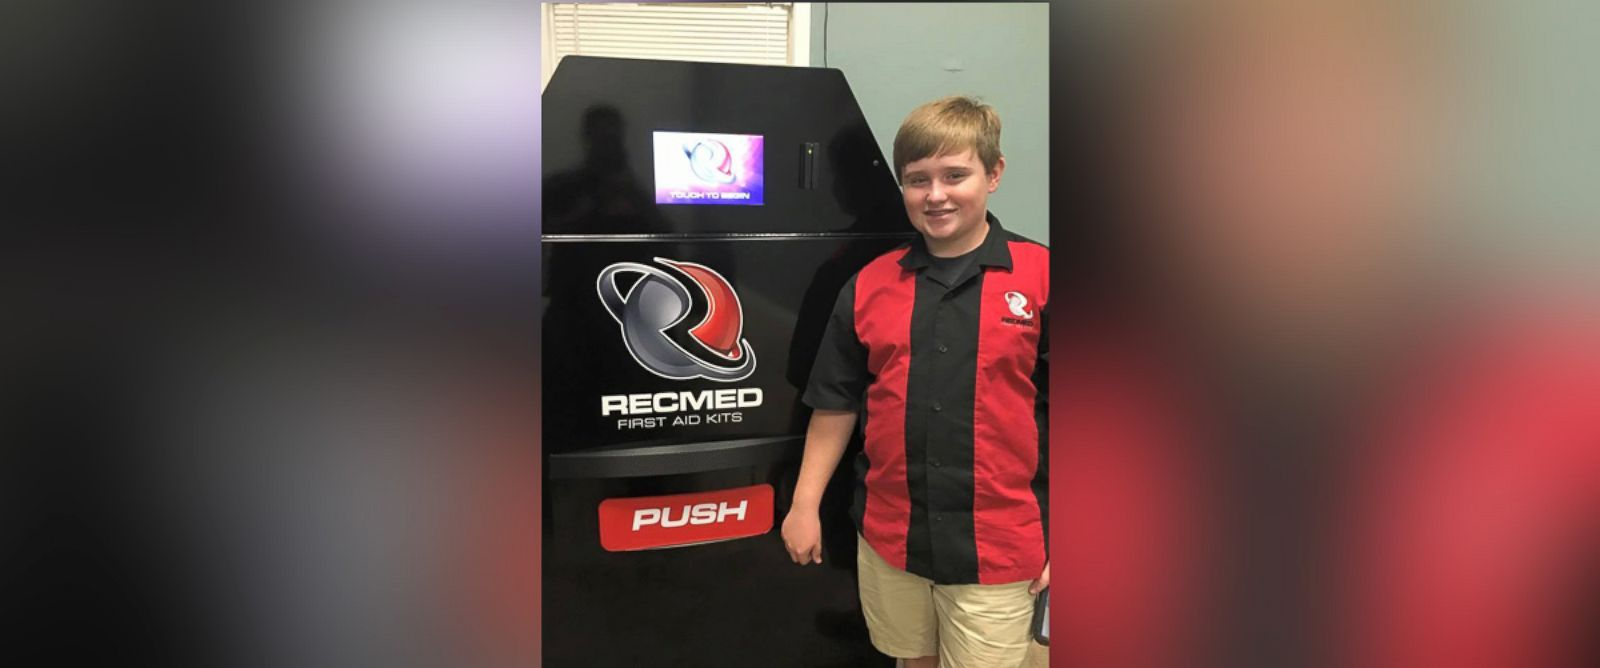 PHOTO: Taylor Rosenthal, 14, stands next to his invention RecMed, the first vending machine created to dispense first aid kits.